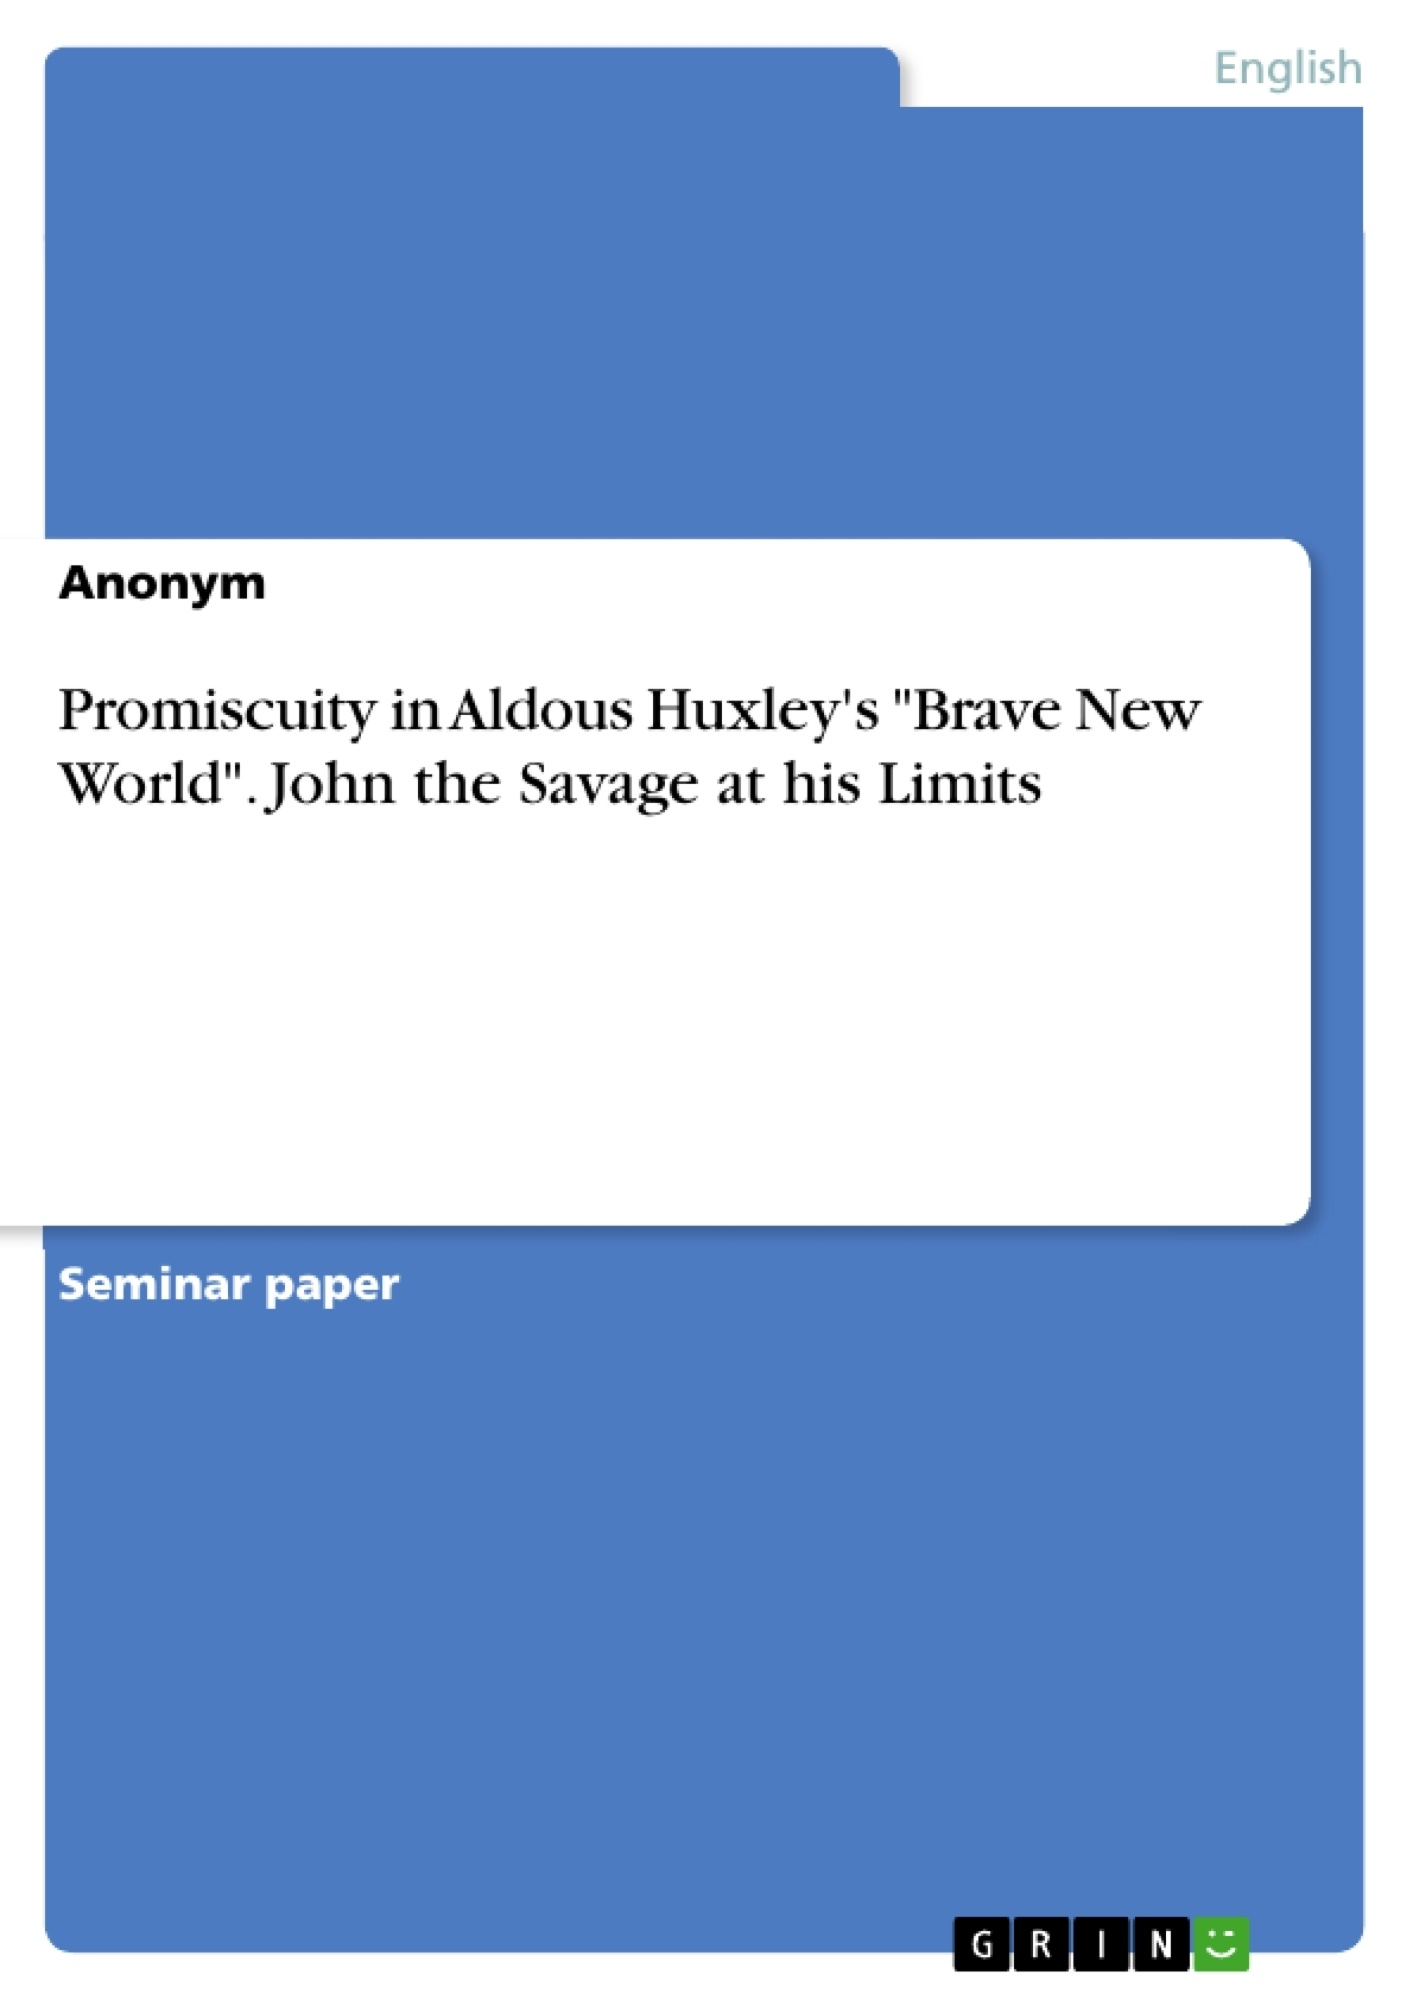 """Title: Promiscuity in Aldous Huxley's """"Brave New World"""". John the Savage at his Limits"""